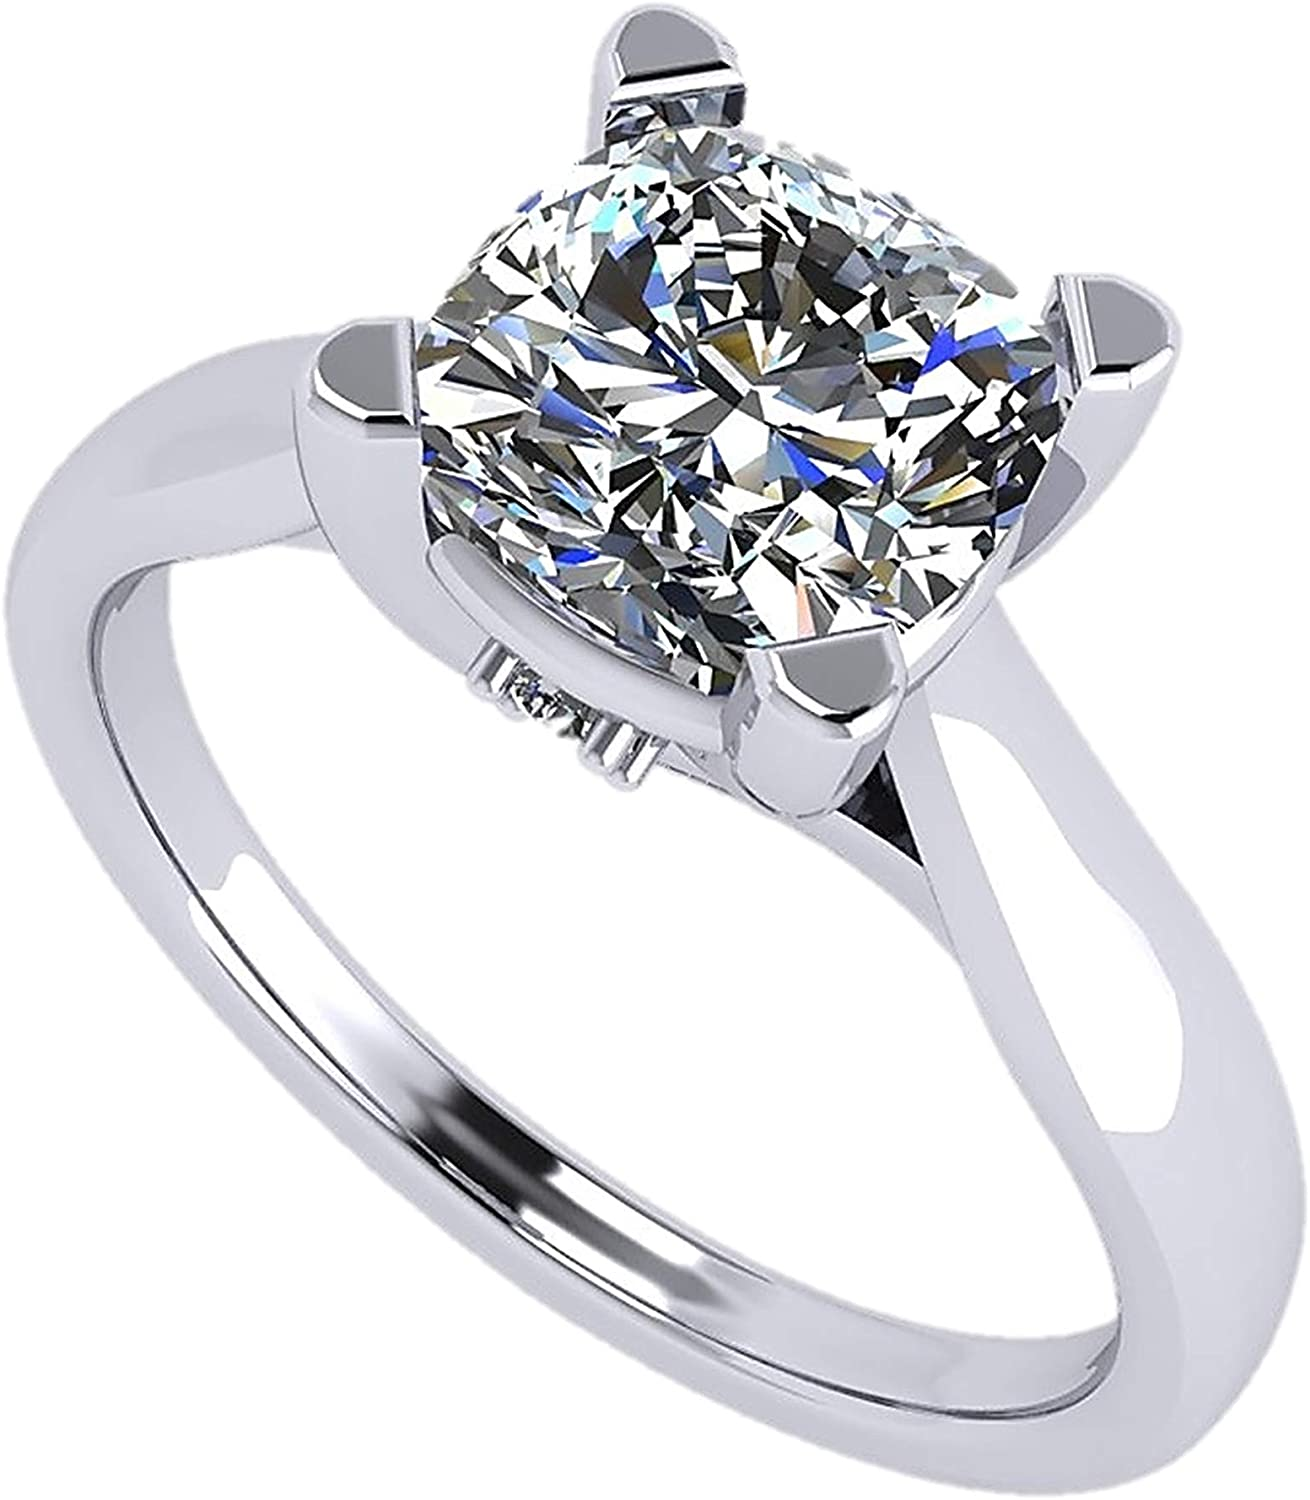 Cushion Cut Don't miss the campaign Simulated Diamond Max 48% OFF Solitaire ring Lucita Engagement s